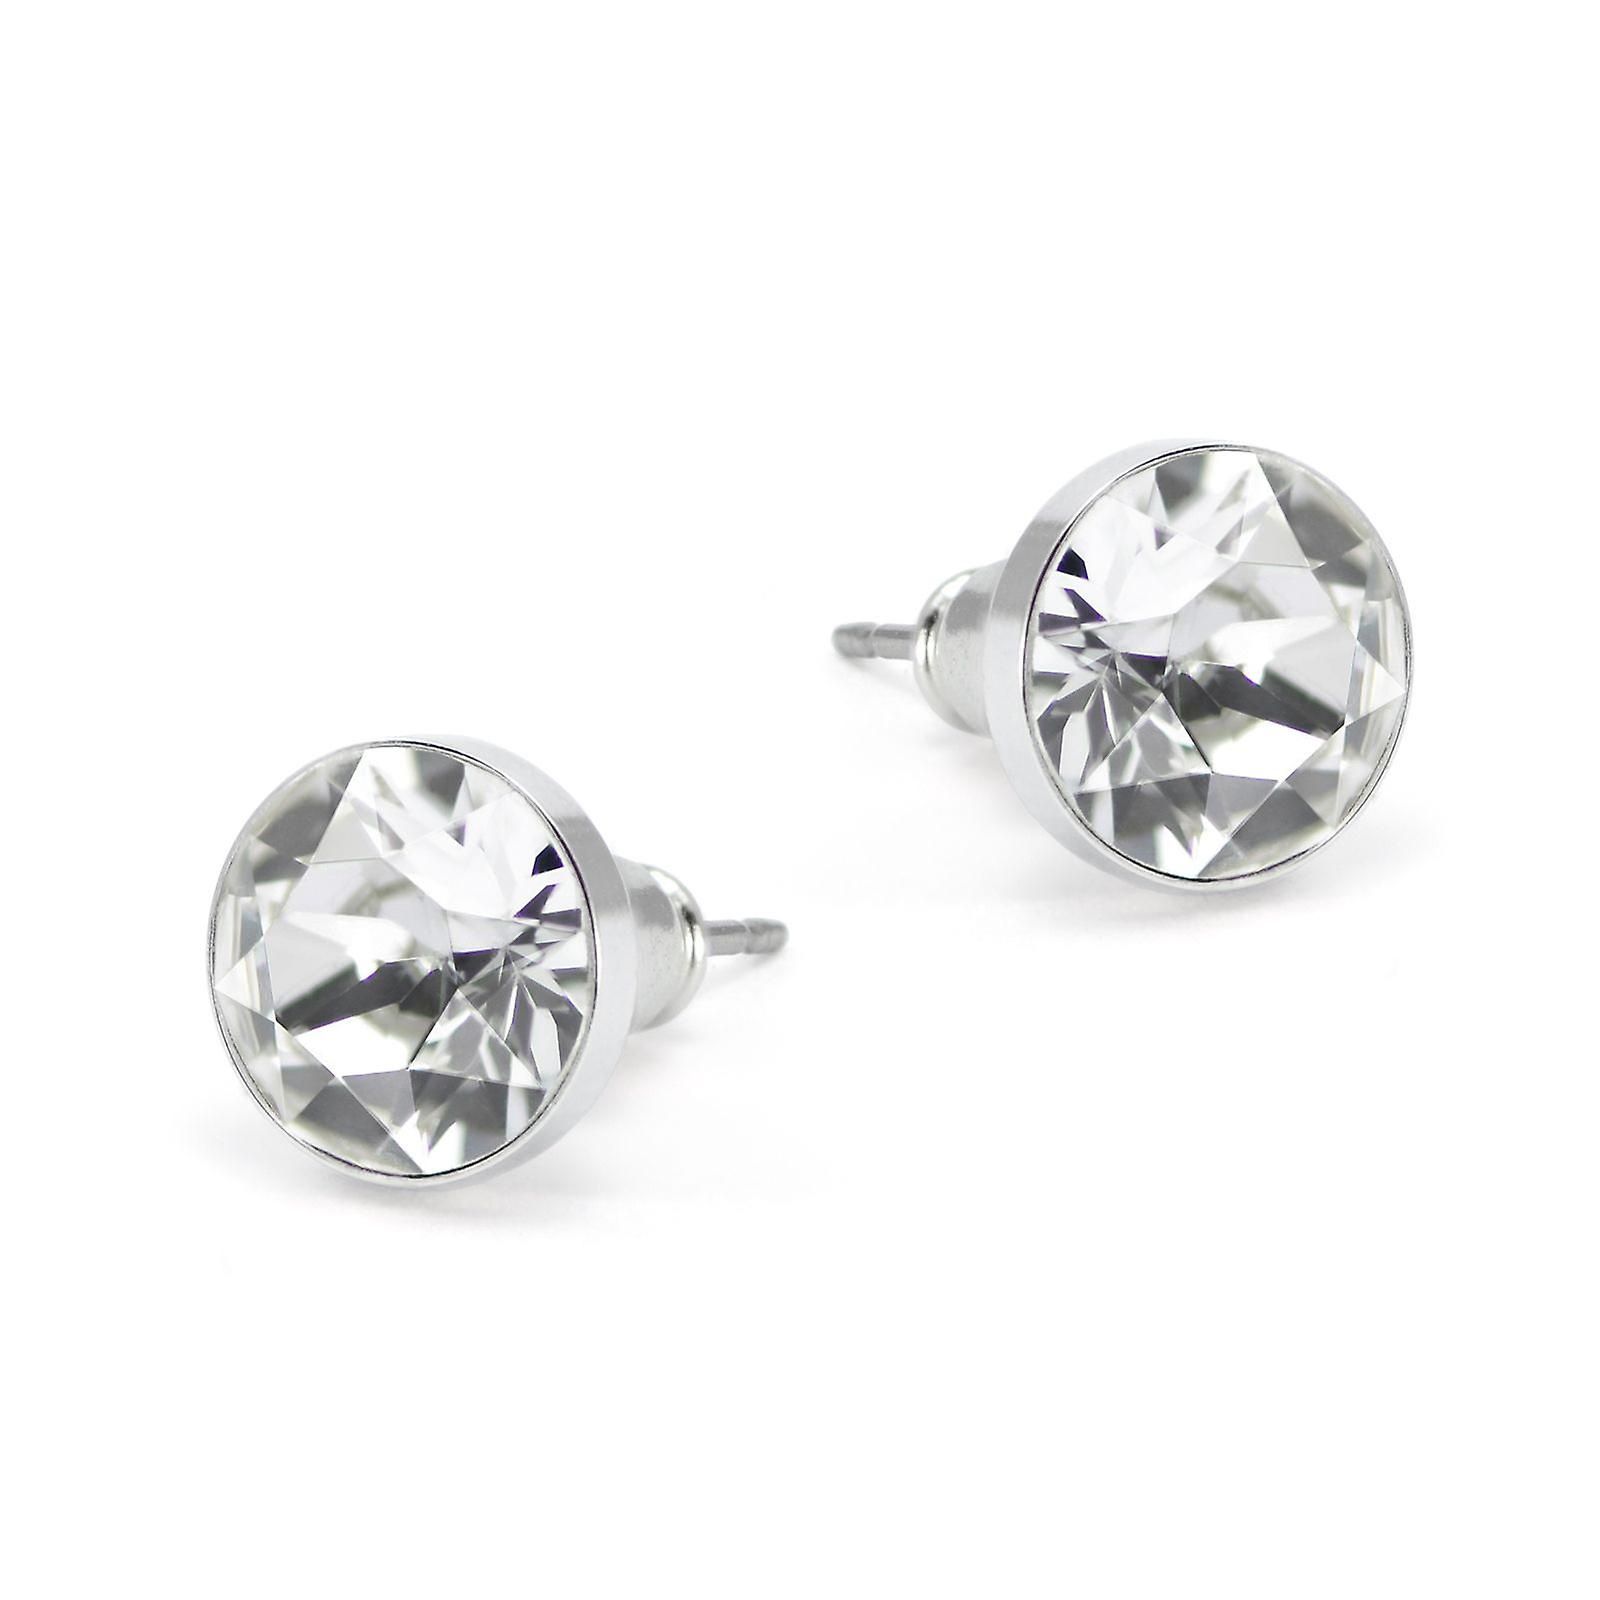 Swarovski Stud Earrings EMB6.4